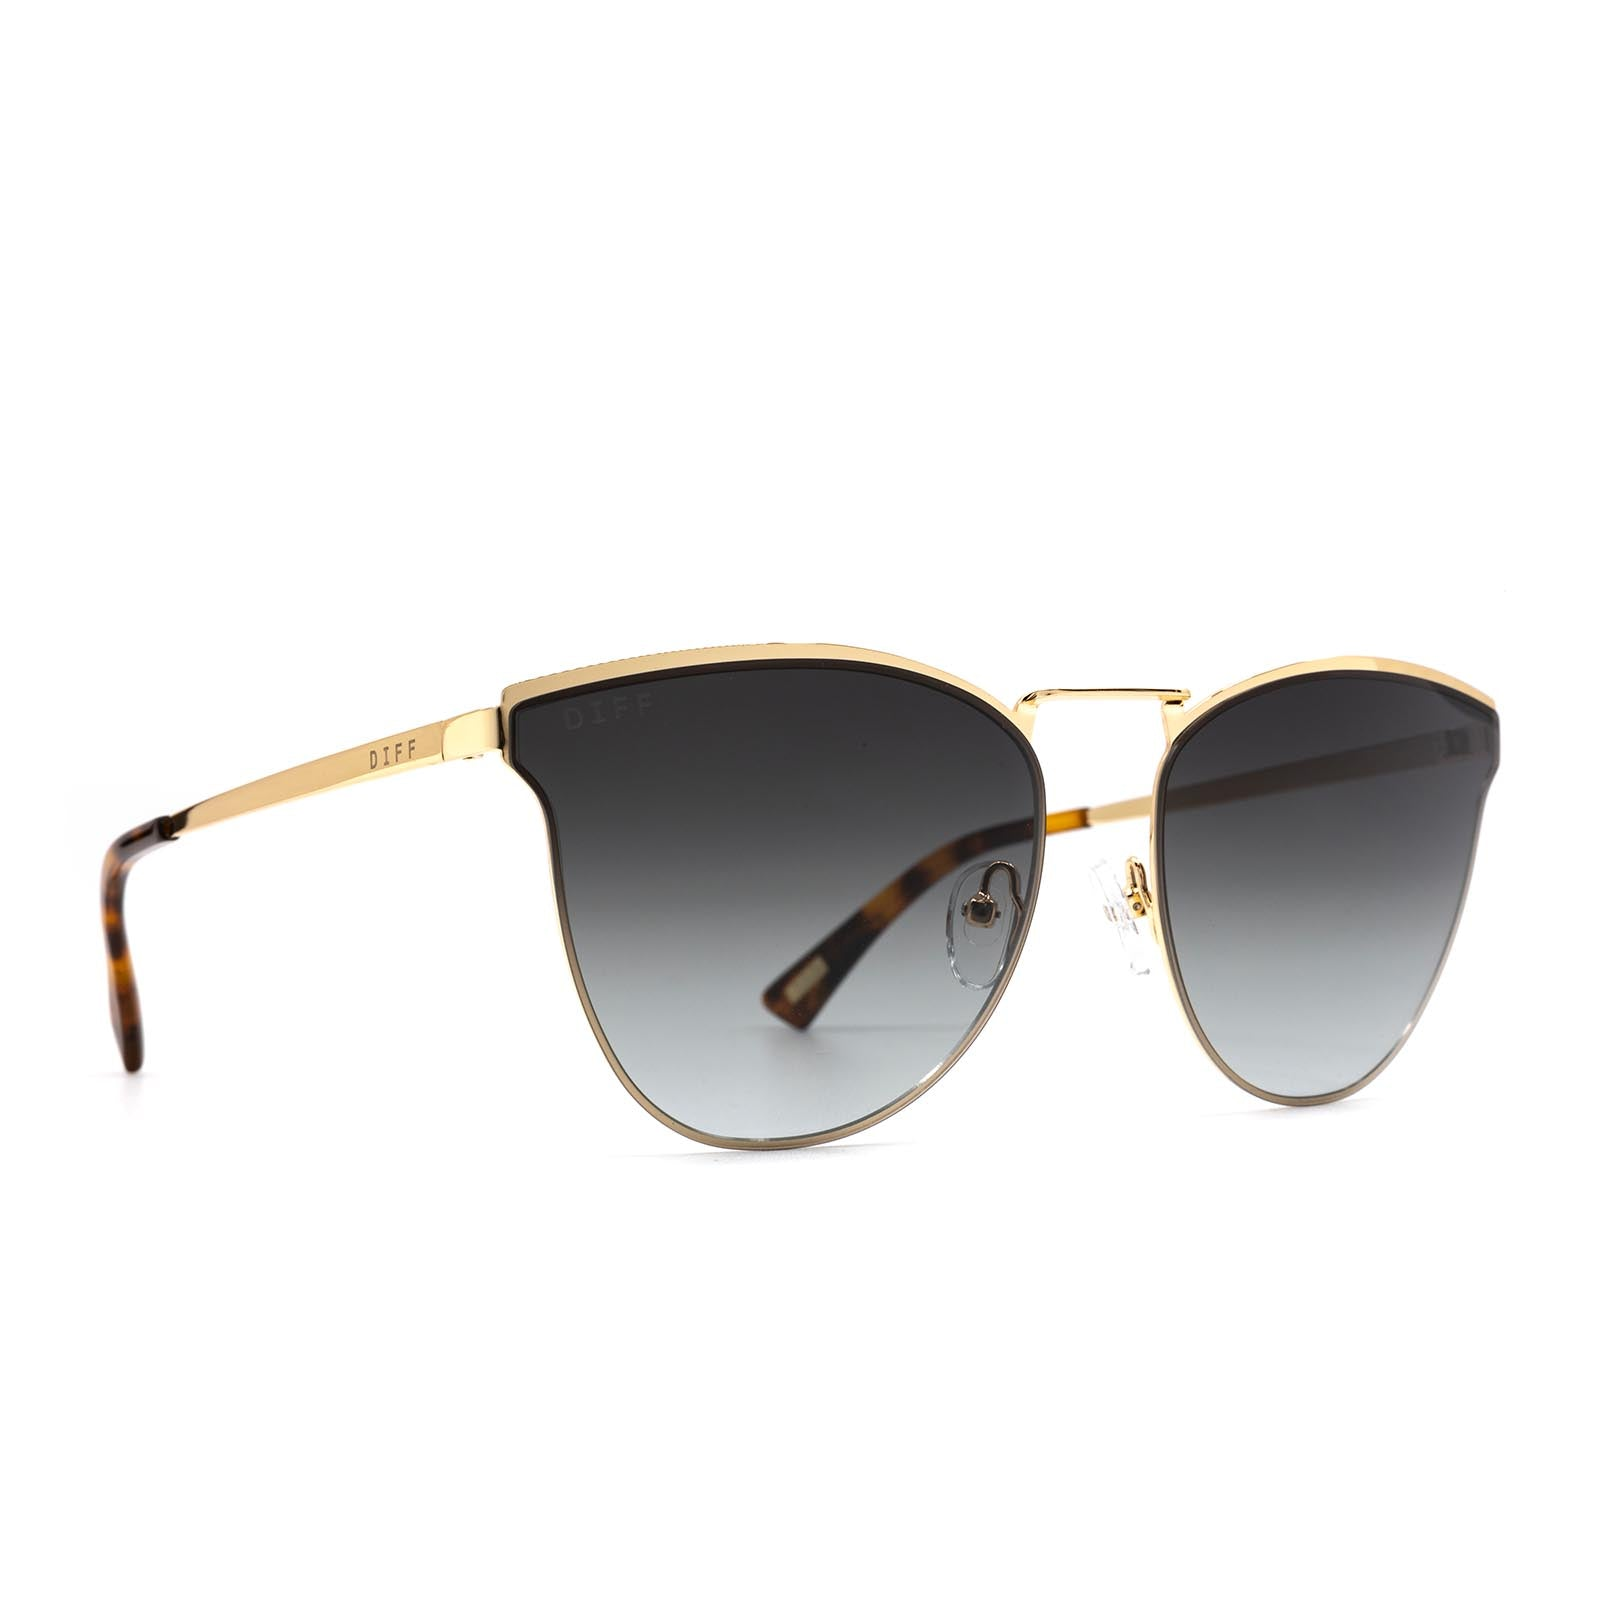 Sadie sunglasses with gold frame and grey lens- angle view